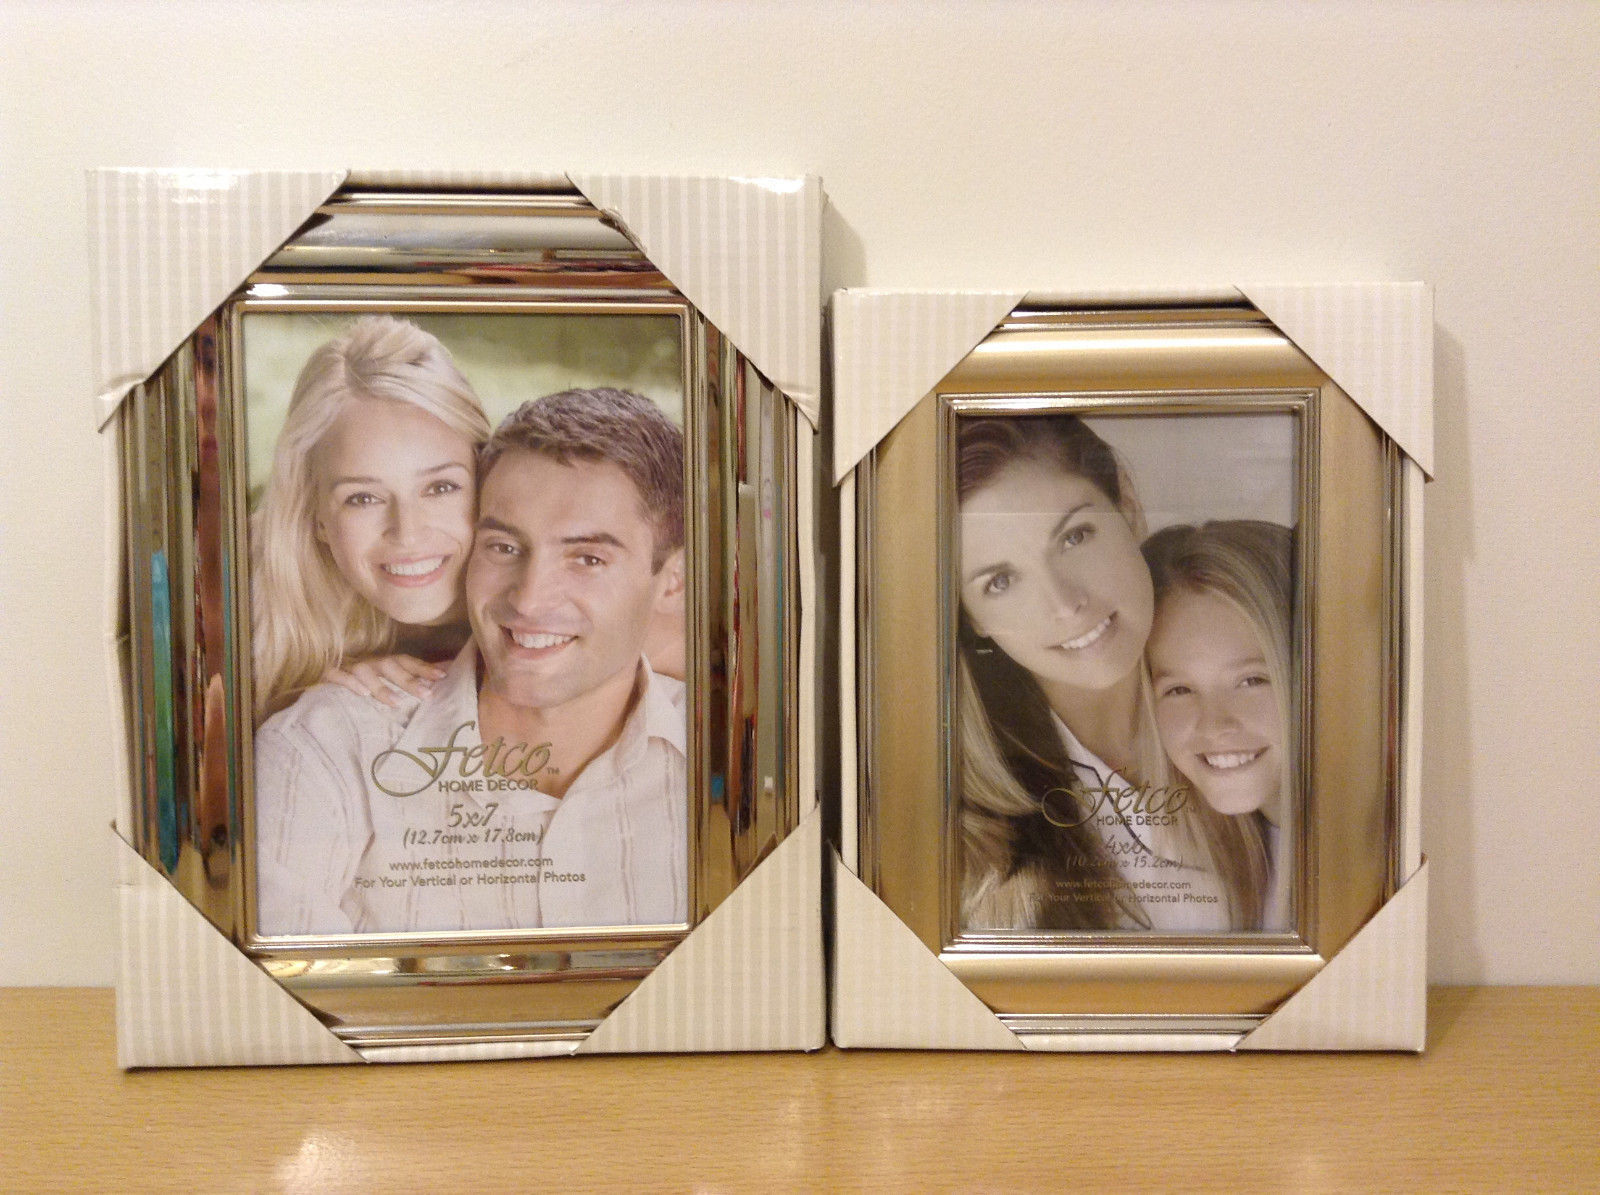 Lot of 2 New Fetco Home Decor Silver Gold Tone Matching Photo Picture Frames